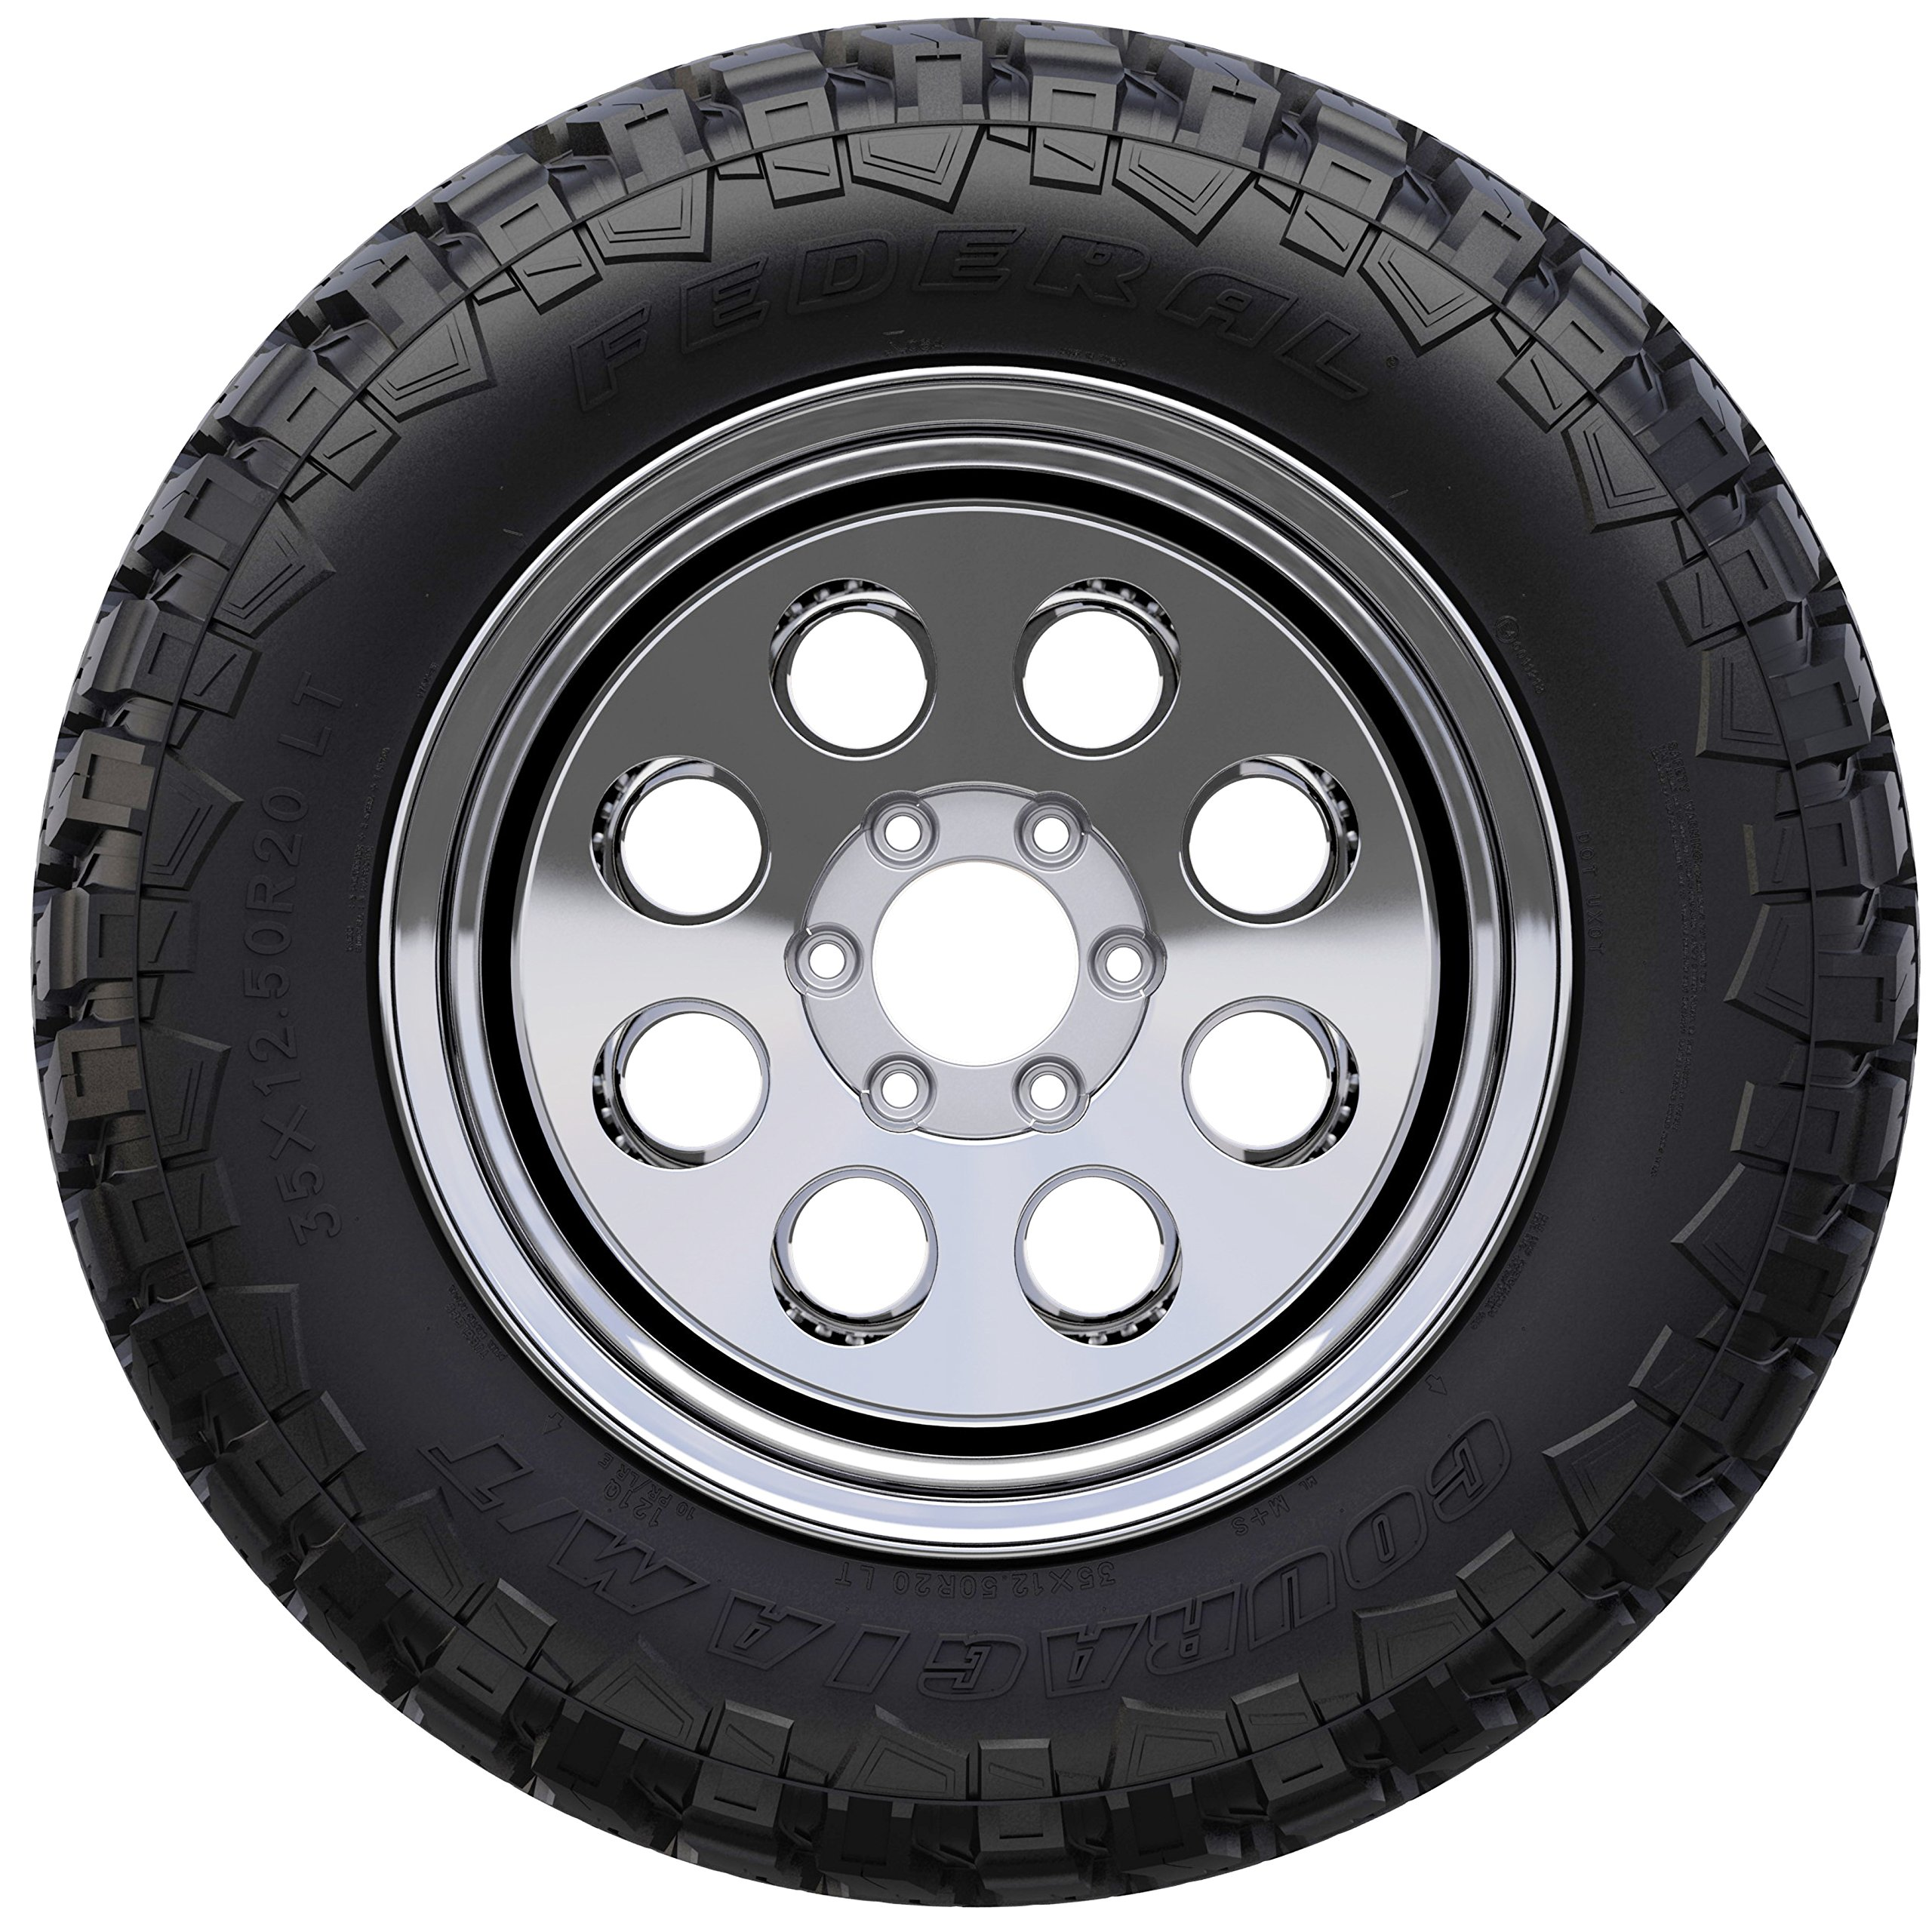 Federal Couragia M/T Mud-Terrain Radial Tire - LT285/75R16 123Q by Federal (Image #3)